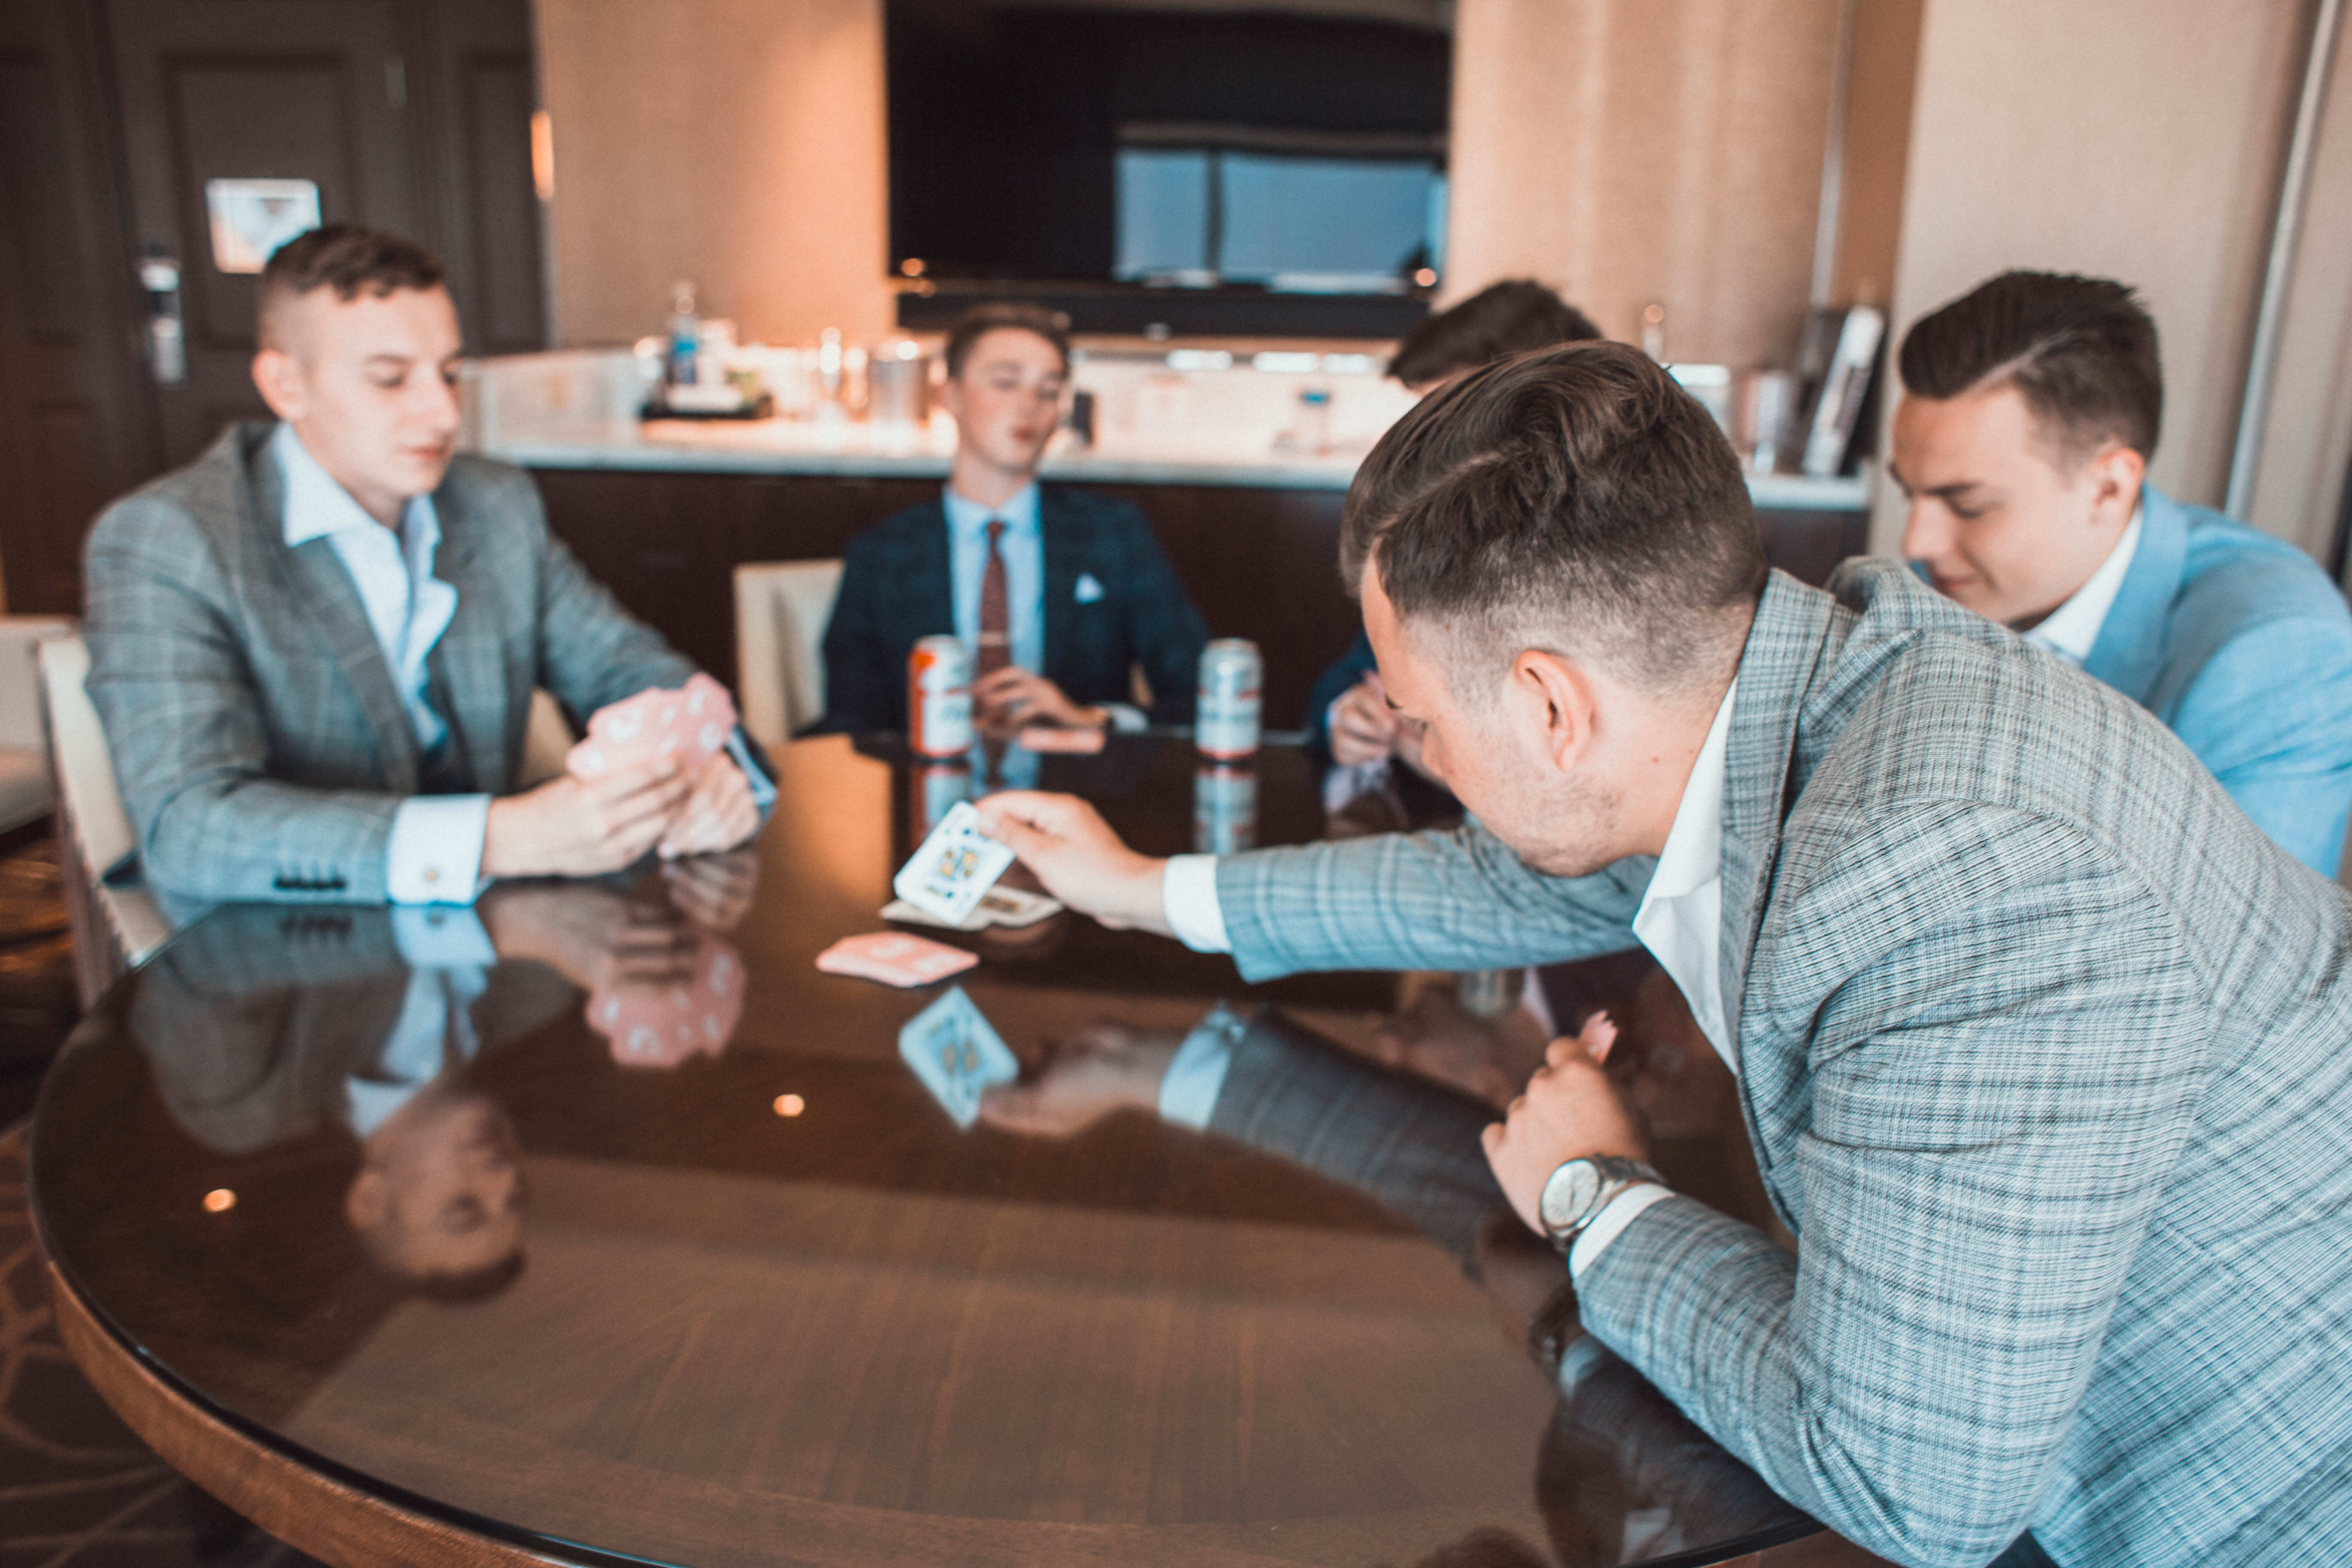 Men playing cards in gray suits.